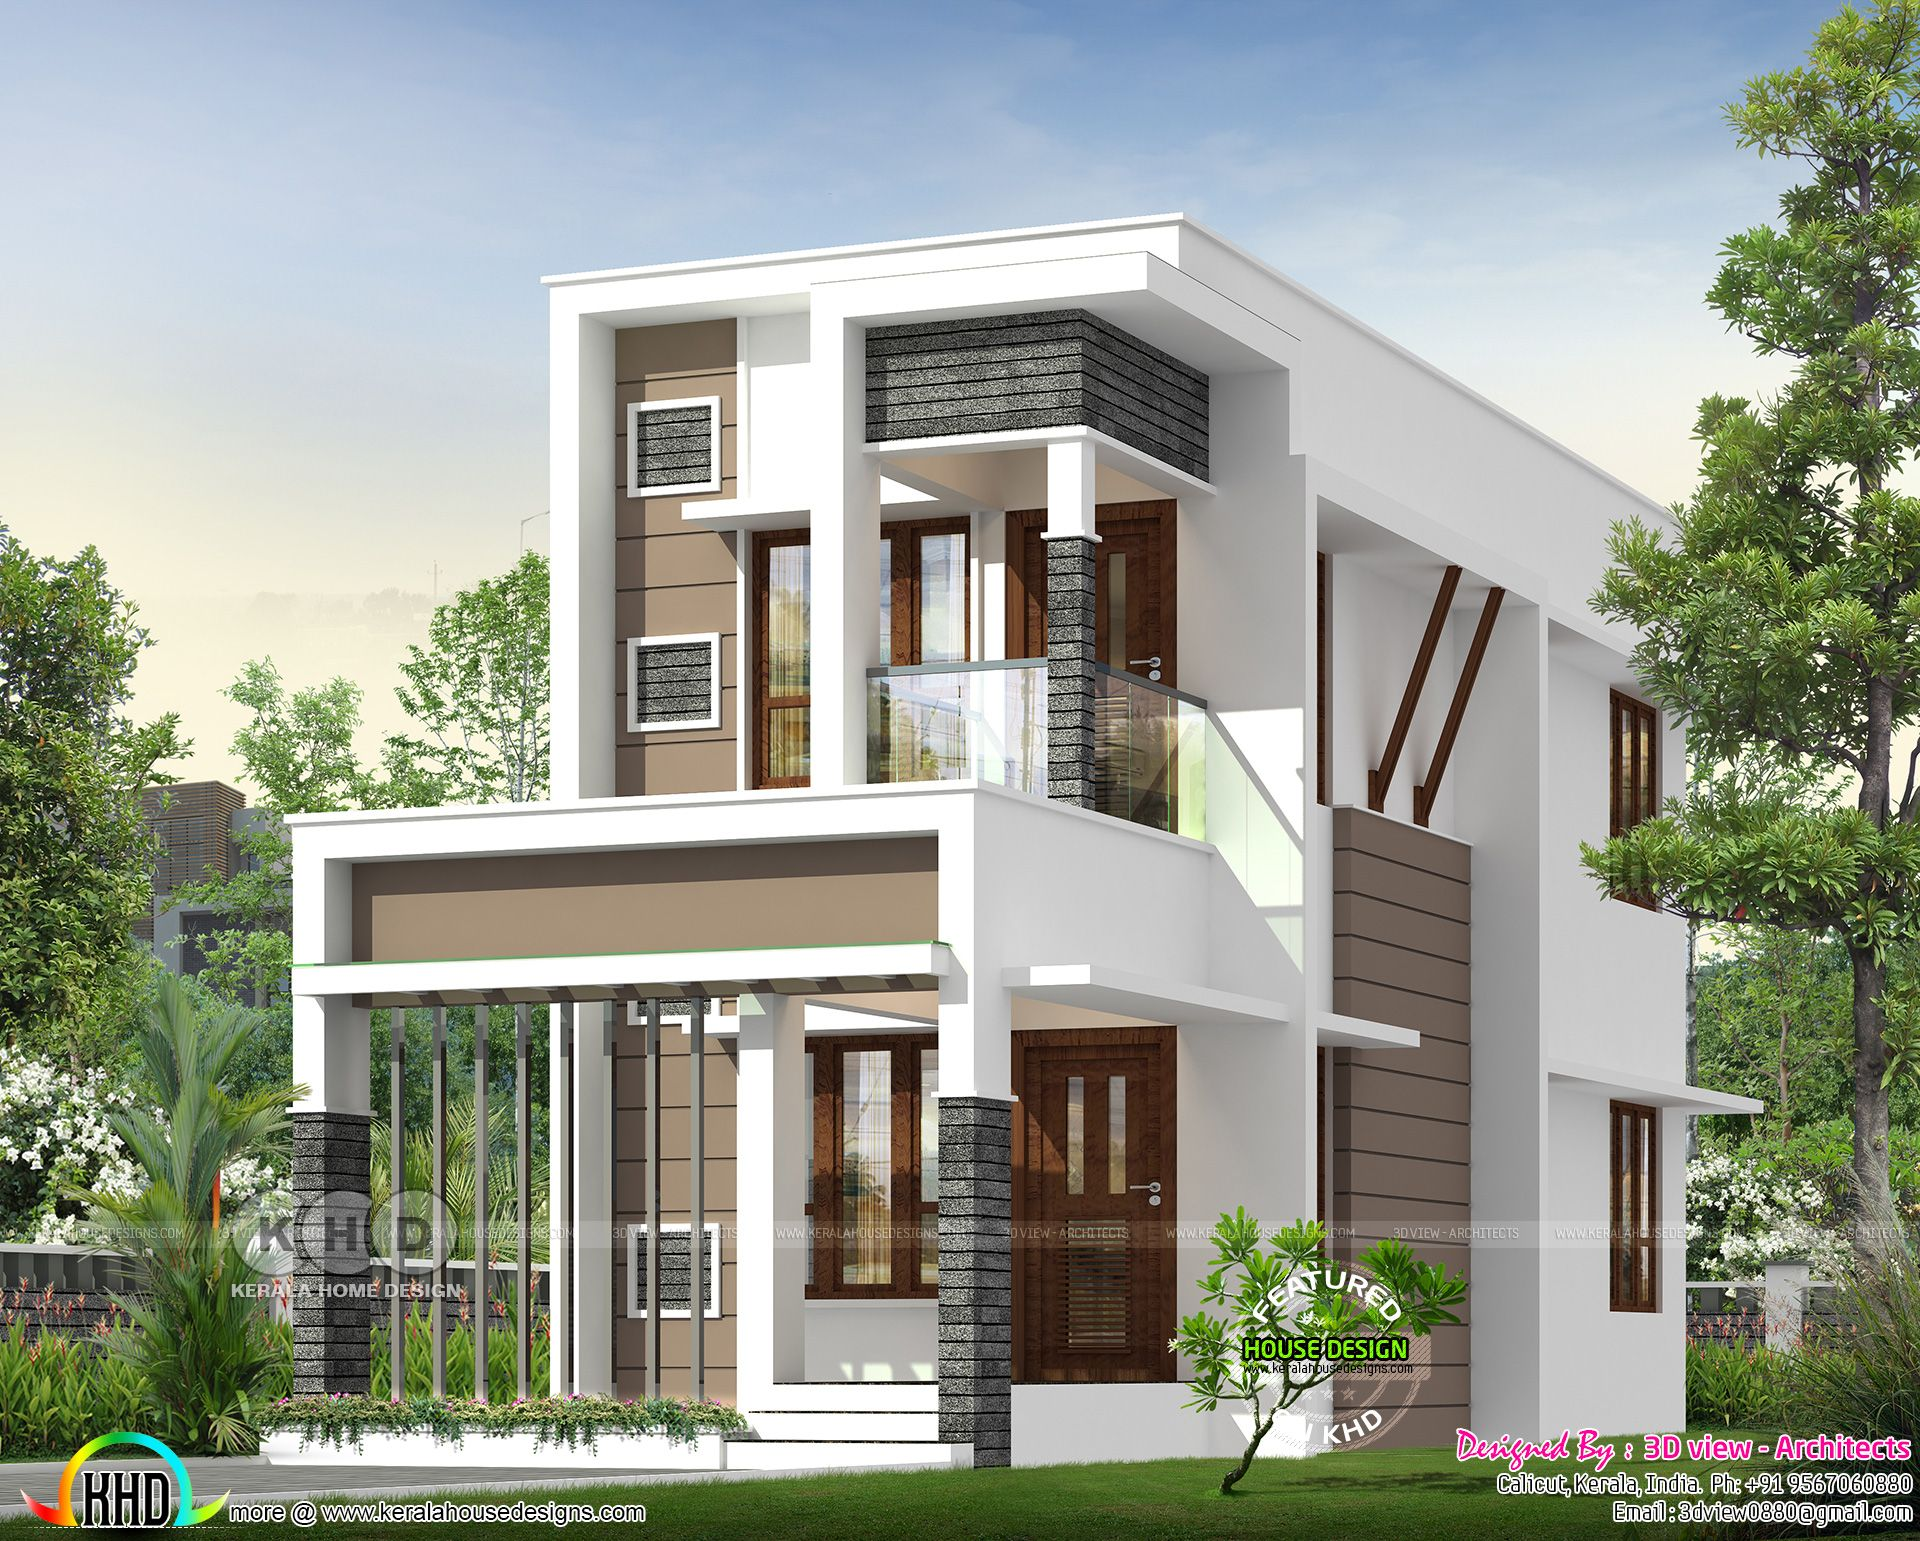 Small Double Storied House With 4 Bedrooms Kerala House Design Modern Exterior House Designs Double Story House